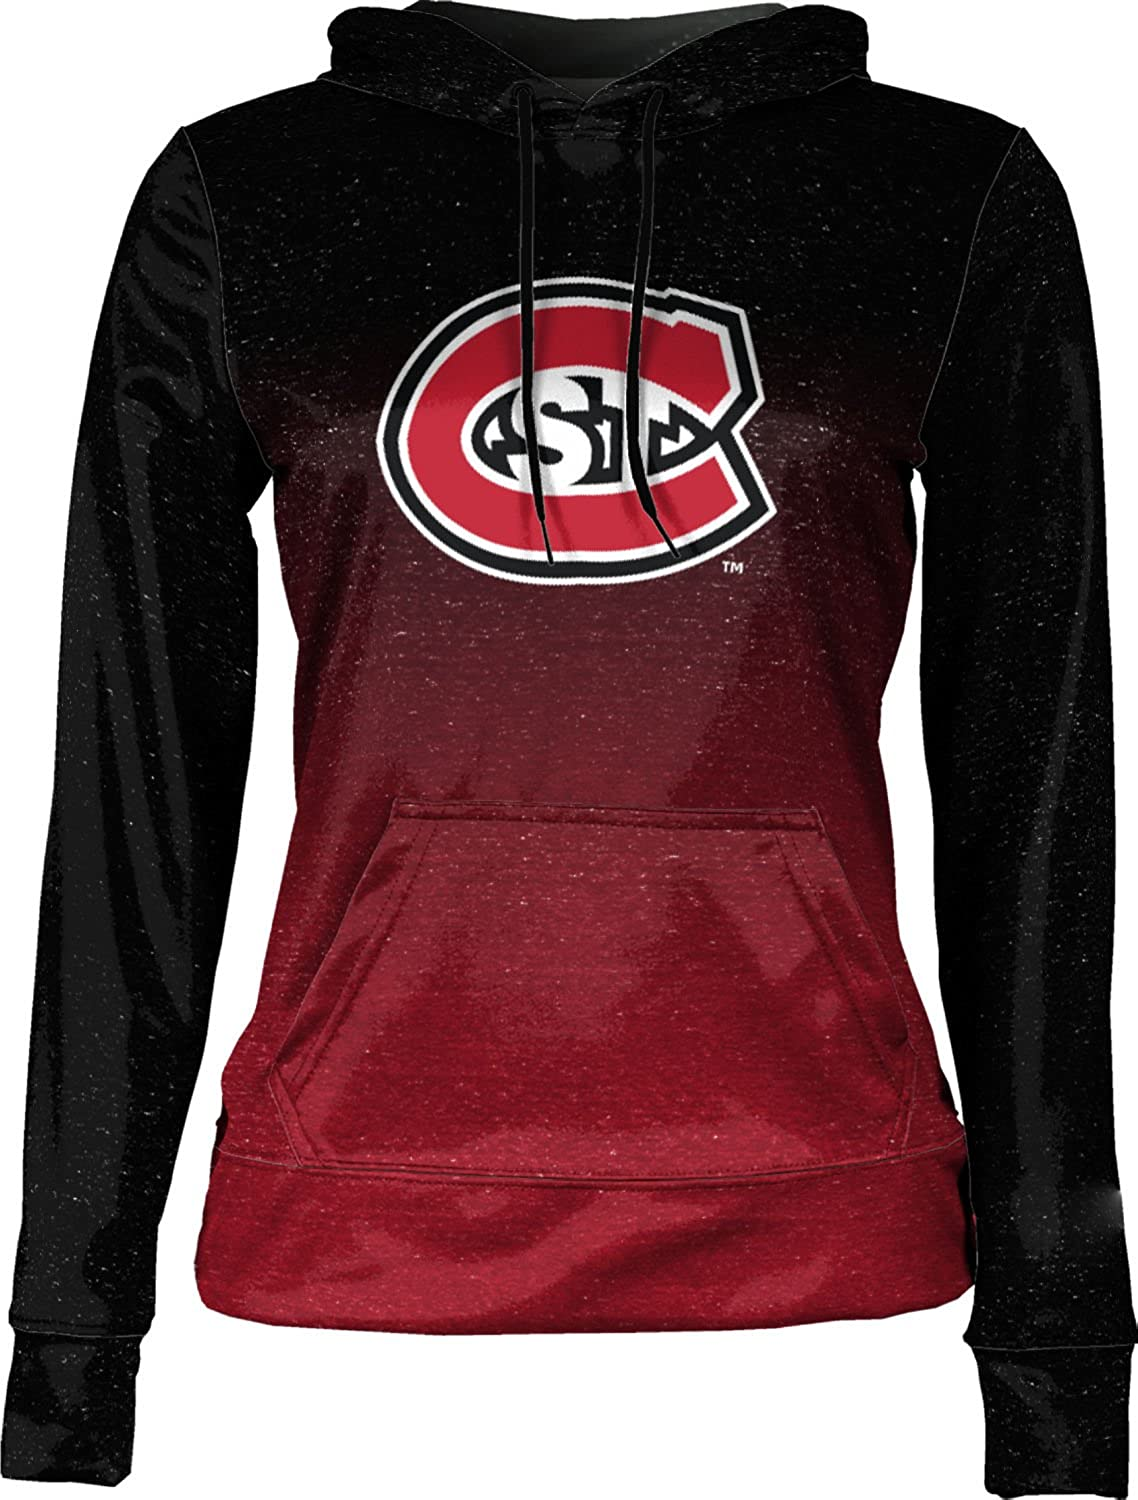 Ombre St School Spirit Sweatshirt Cloud State University Womens Pullover Hoodie